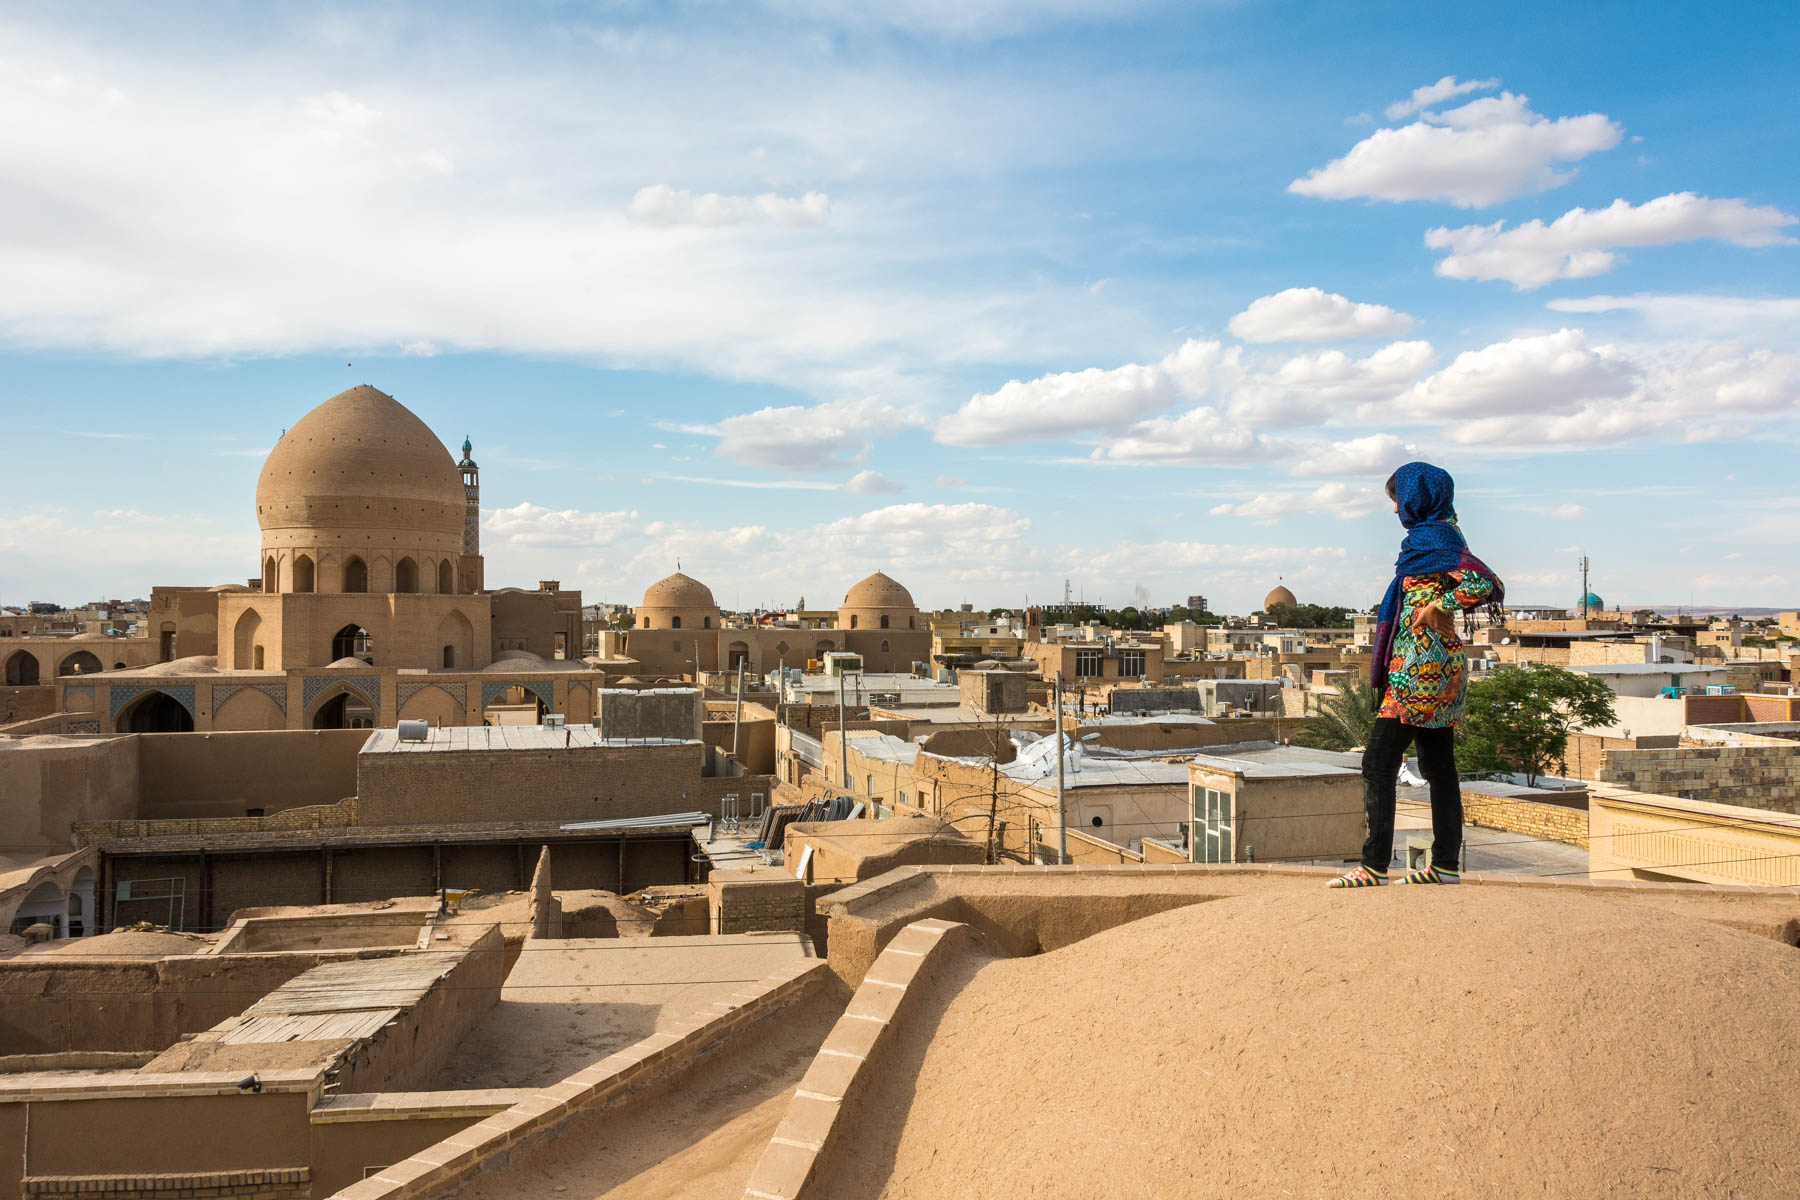 Things to know before traveling in Iran: how women need to dress and act. Surveying the skyline in Kashan, Iran.